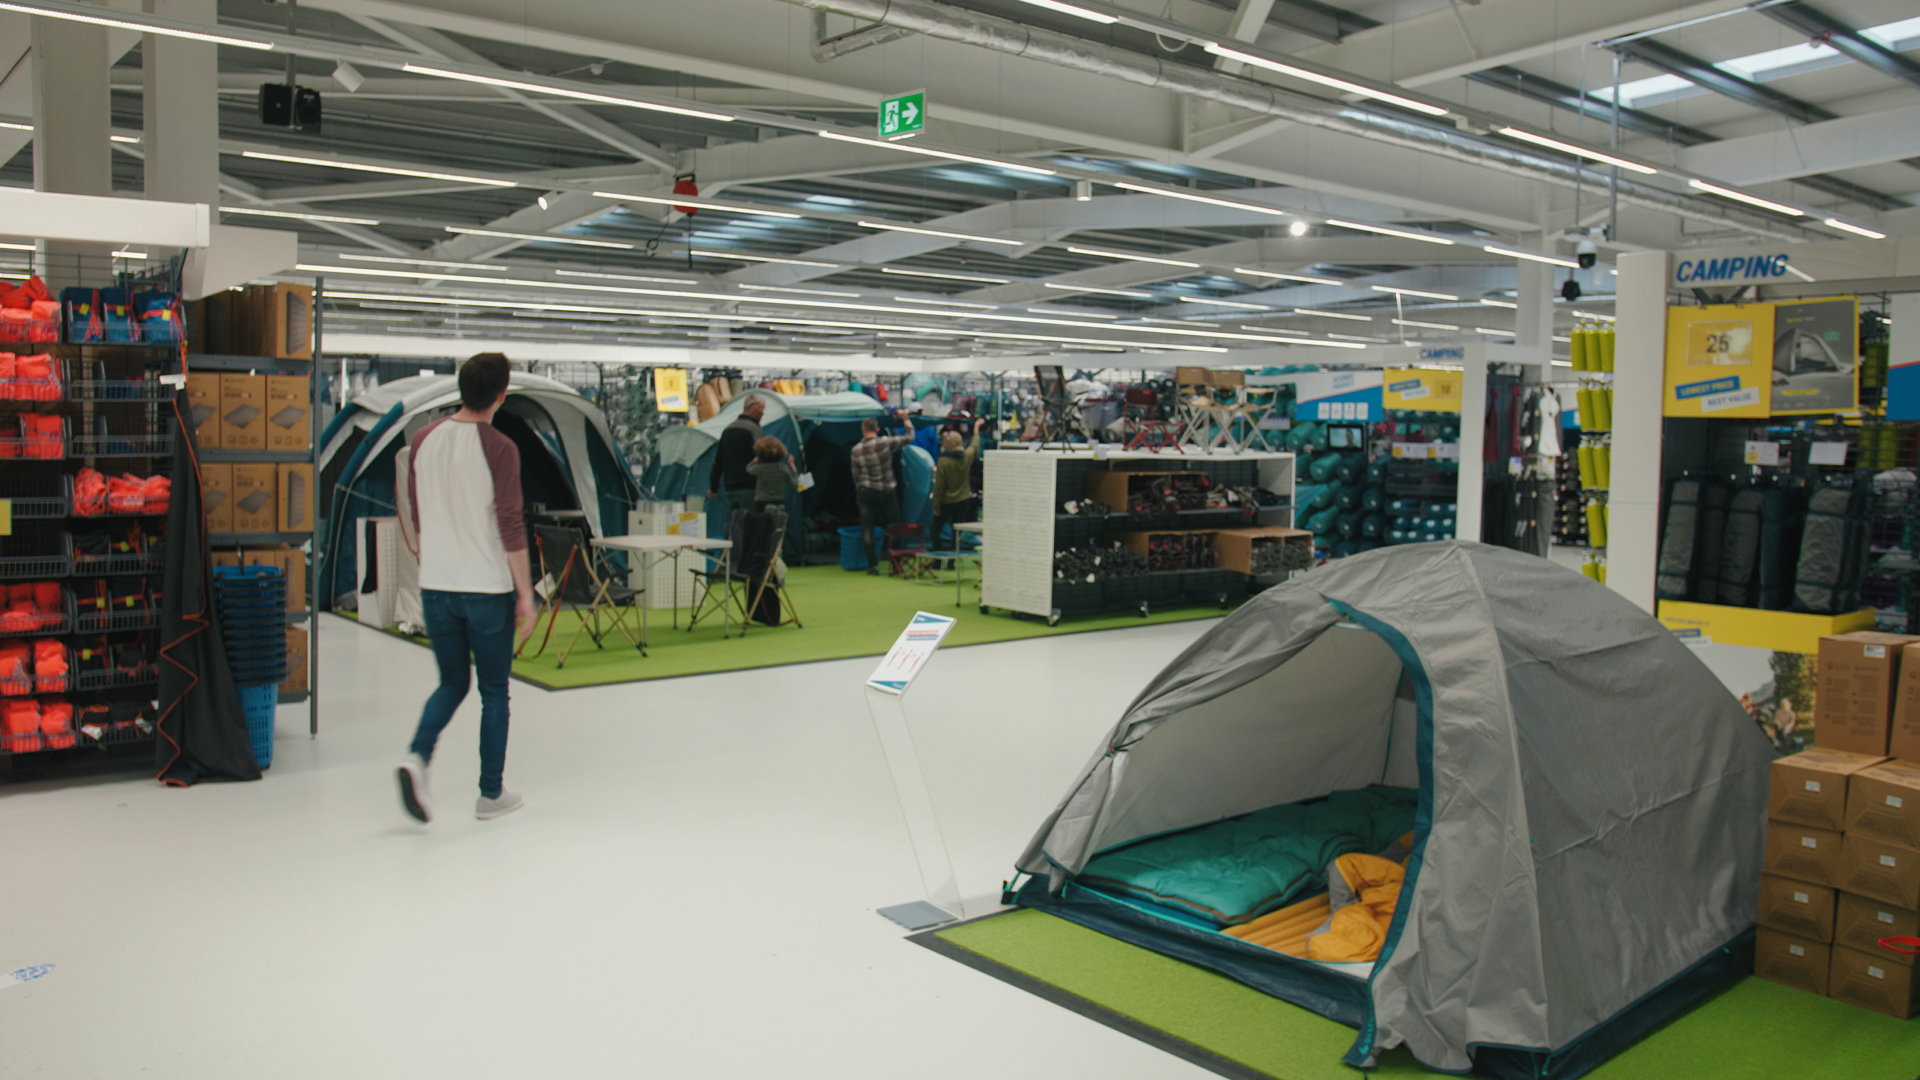 Dublin S New Decathlon Sports Store Is A Completely New Shopping Experience Balls Ie